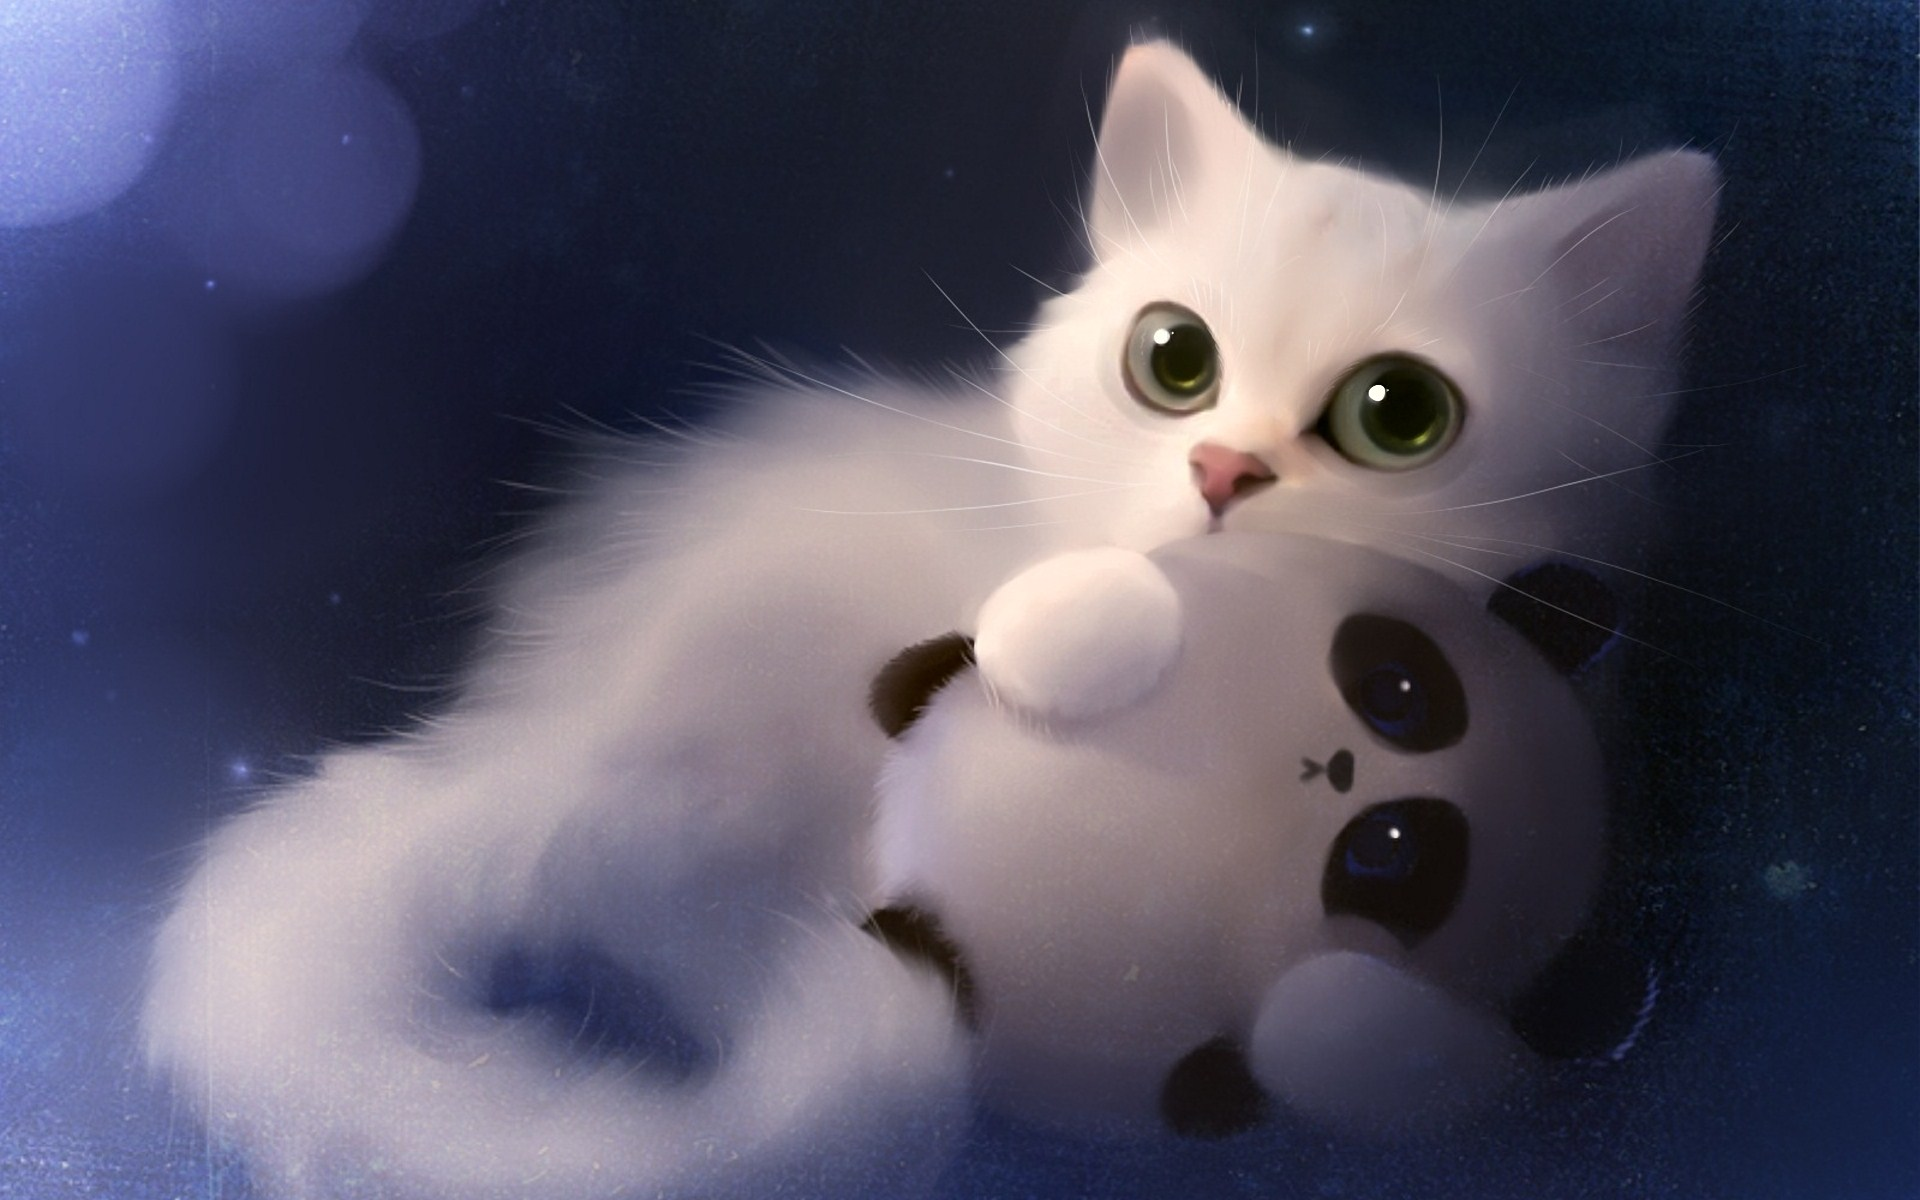 Cute HD Background Wallpapers. - Media file | PixelsTalk.Net